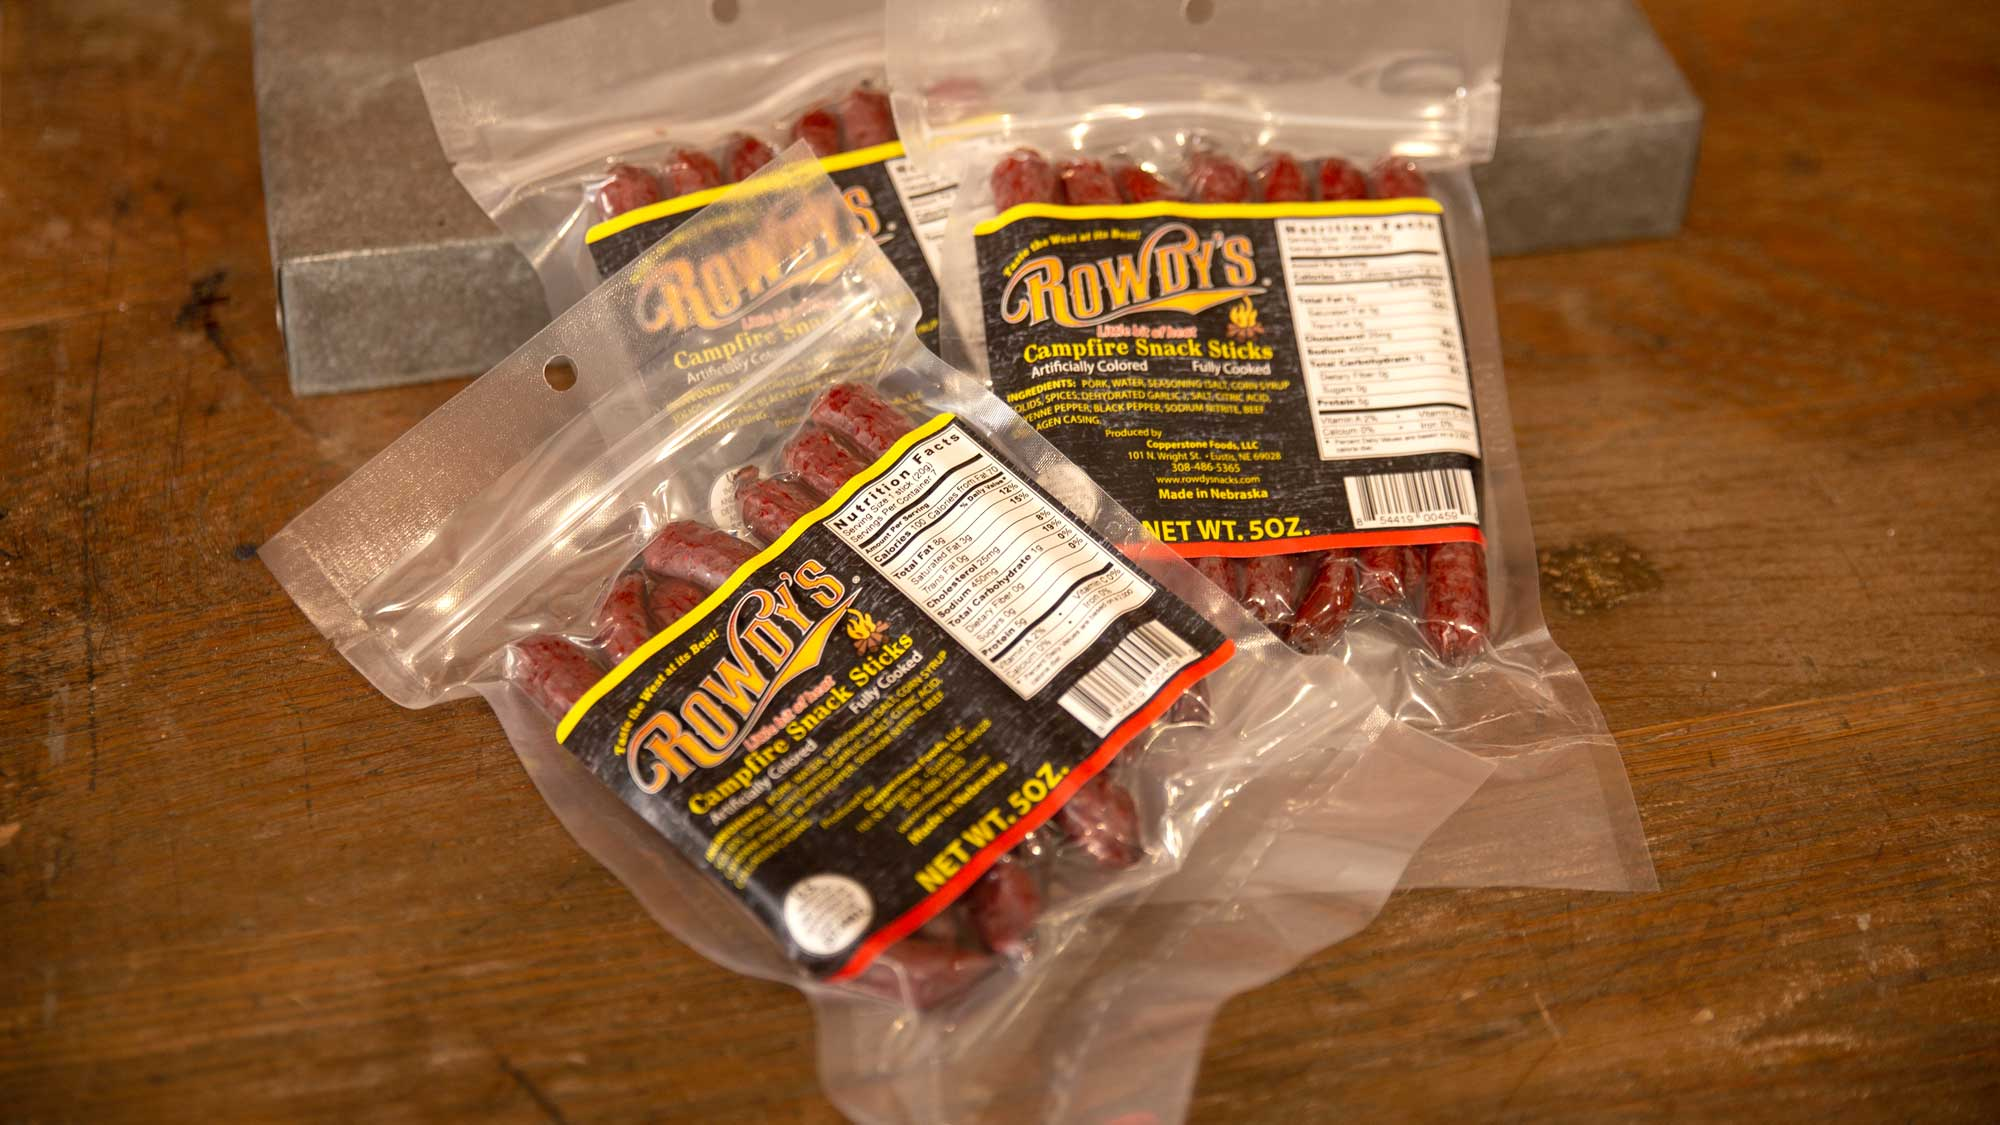 Rowdy's Campfire Snack Sticks  - Also new to the Rowdy's family! Again, a 100% Nebraska pork product. Same basic recipe as the Smokehouse sticks but with just enough spice to warm you like a wilderness campfire!   $6.49 / 5 oz bag (7 sticks)